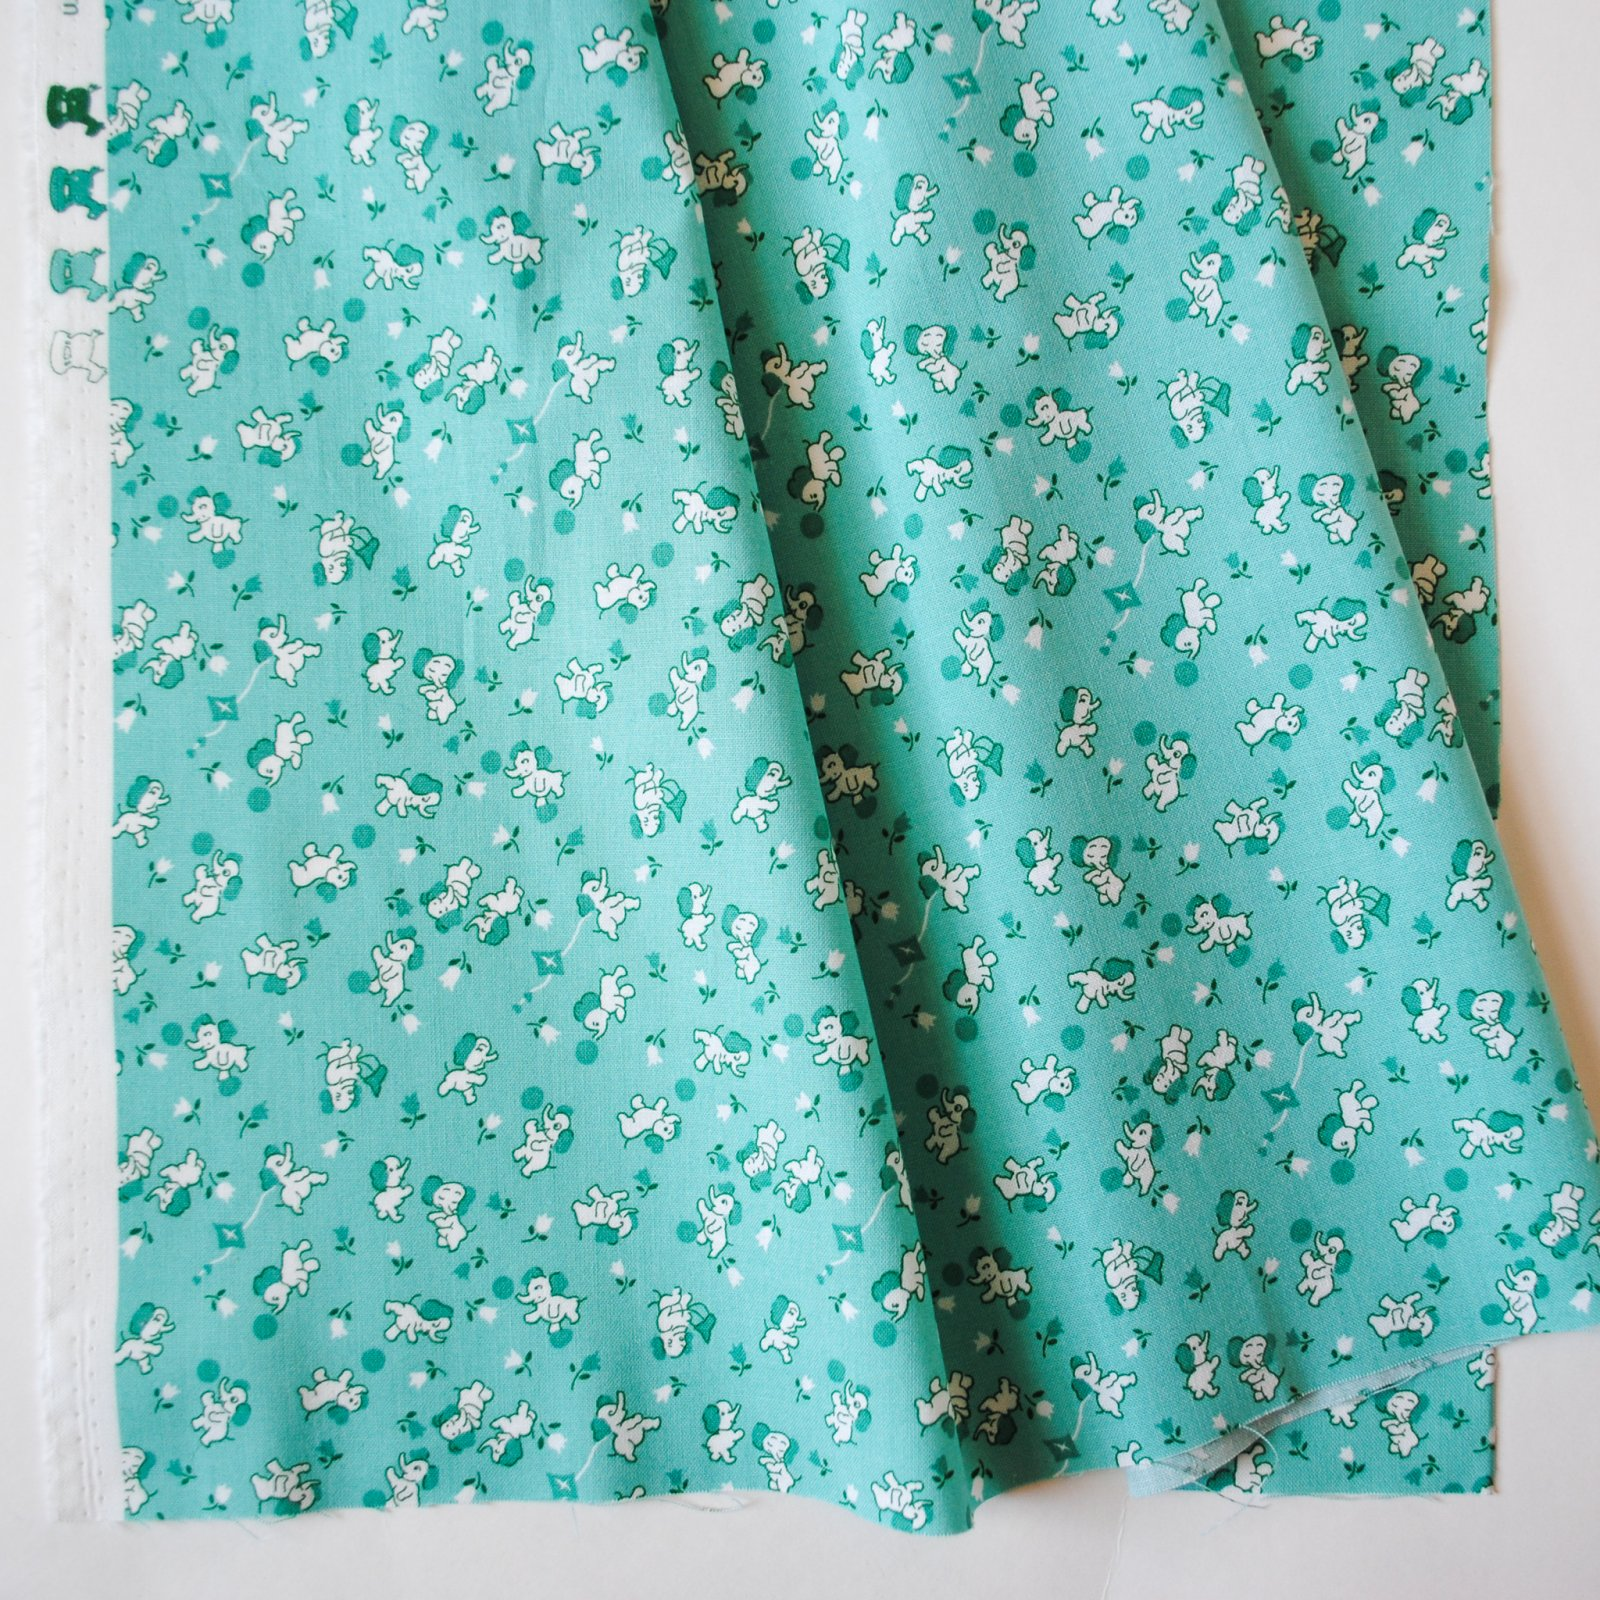 Storytime 30s Elephants Teal